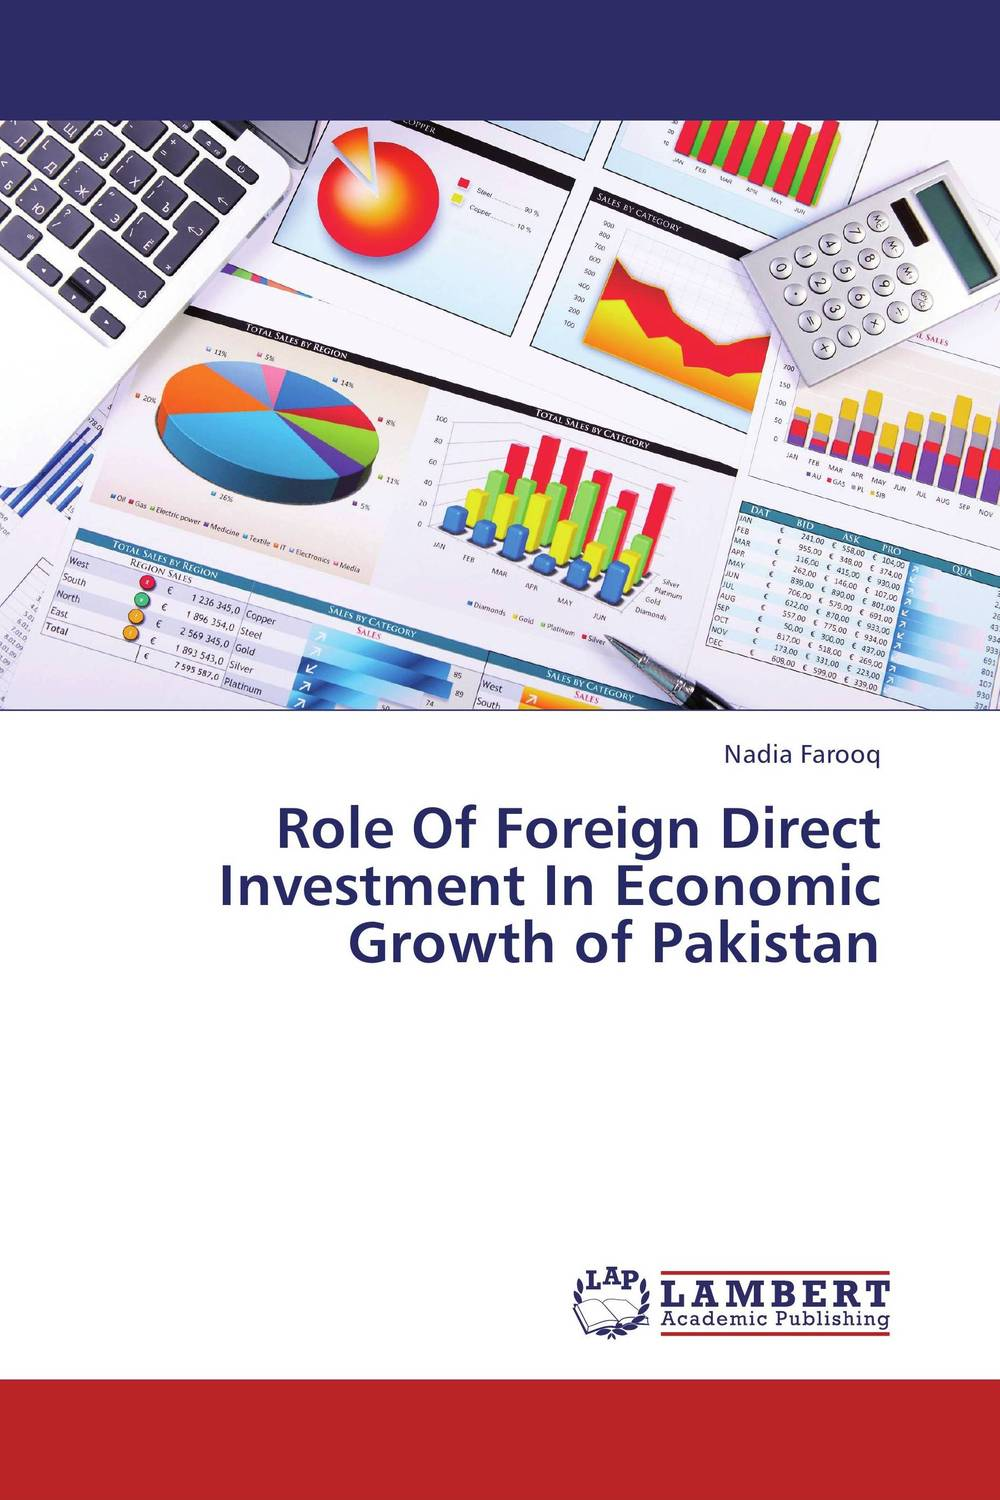 Role Of Foreign Direct Investment In Economic Growth of Pakistan banknotes of the world 2007 банкноты стран мира 2007 выпуск 7